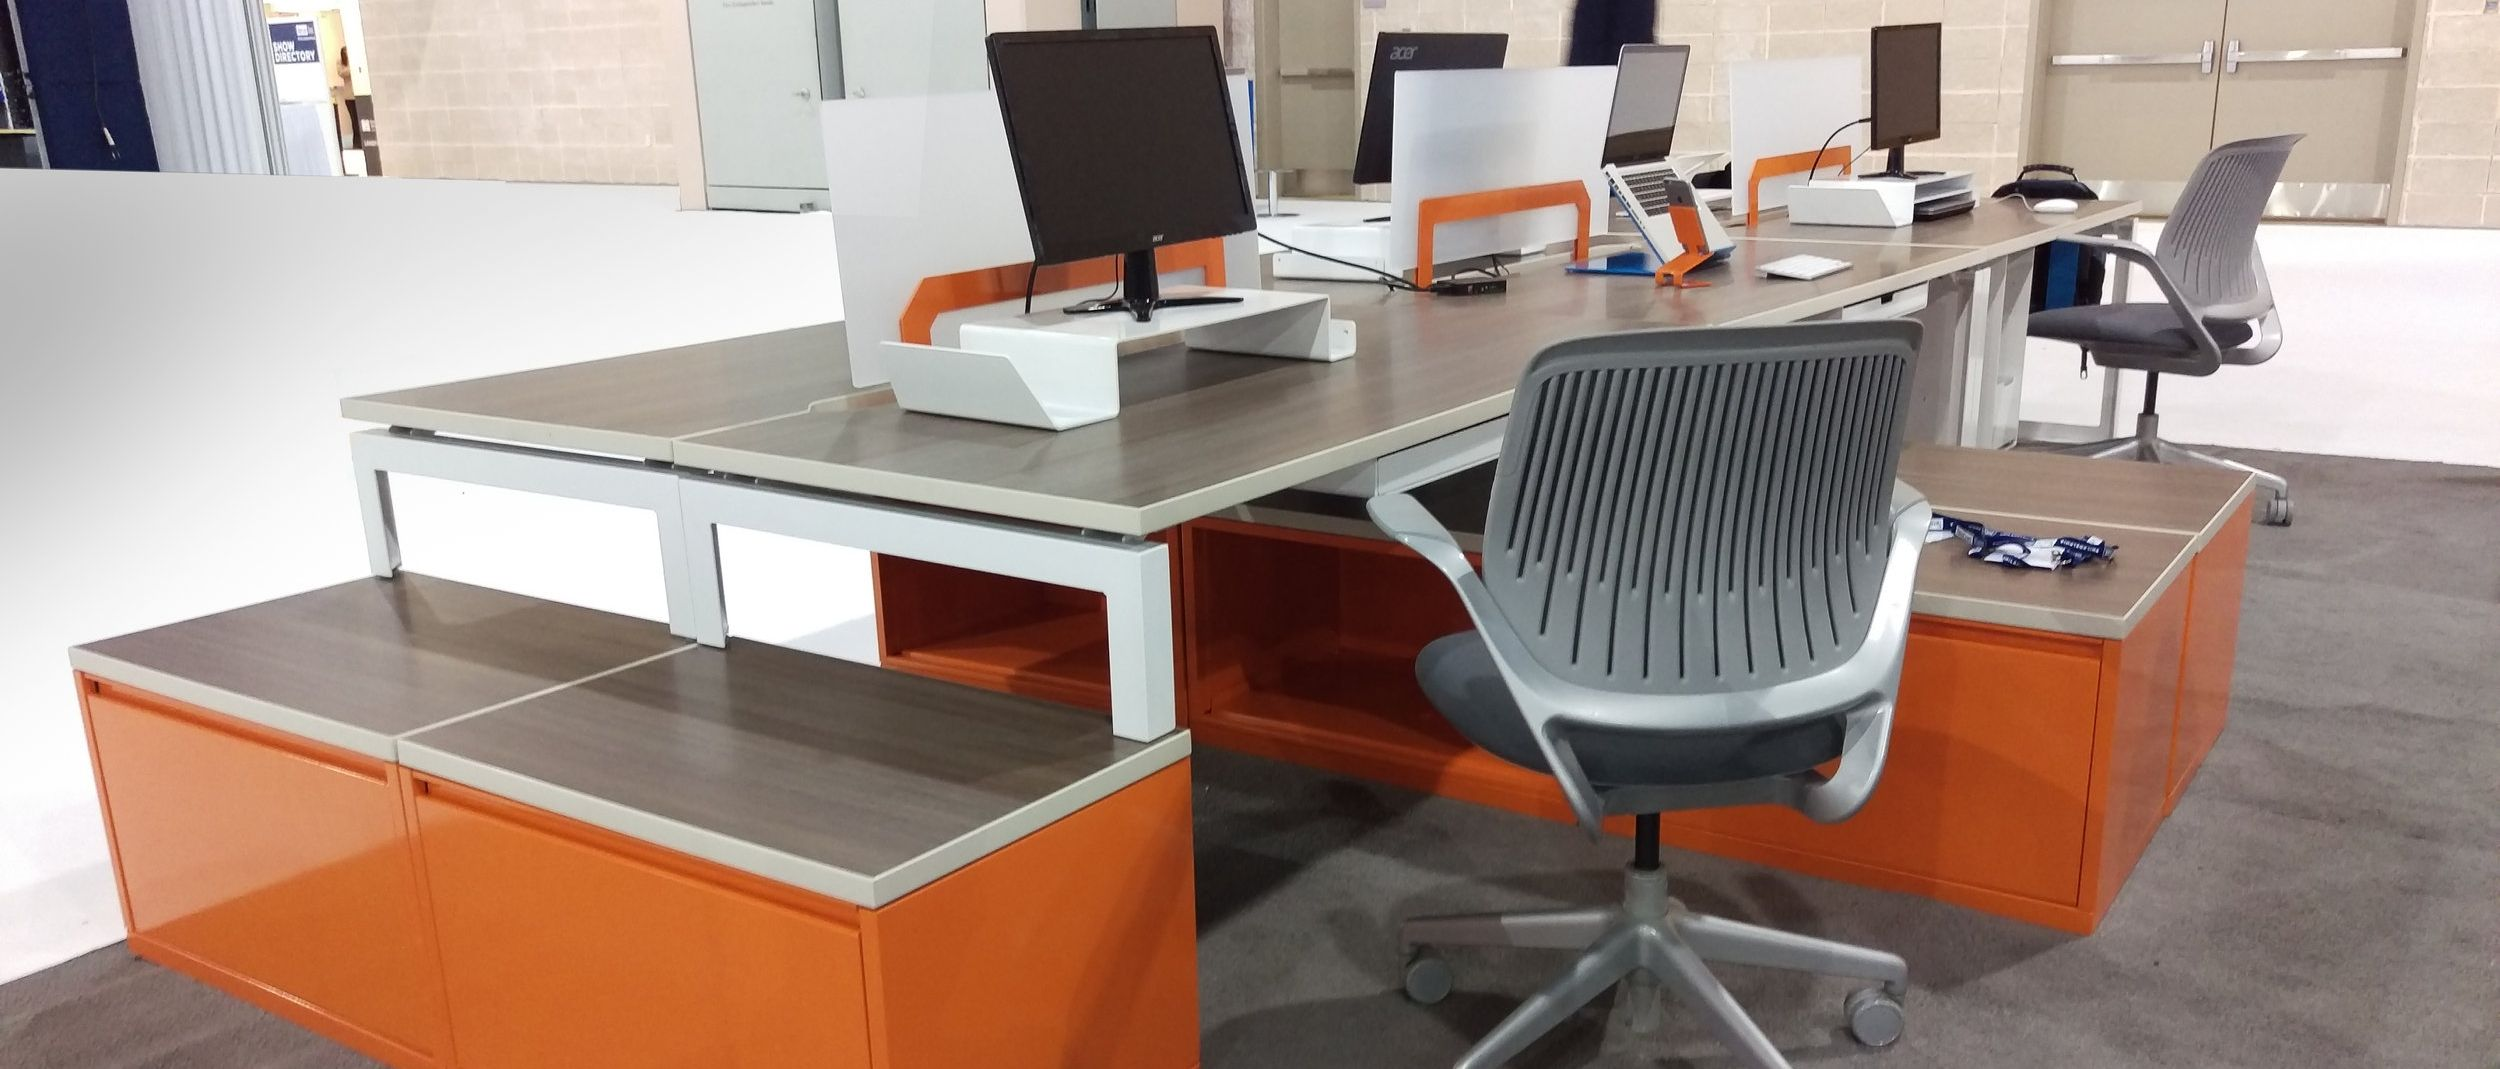 basic office desk. Montisa - Basic Desks/Files/Accessories Office Desk